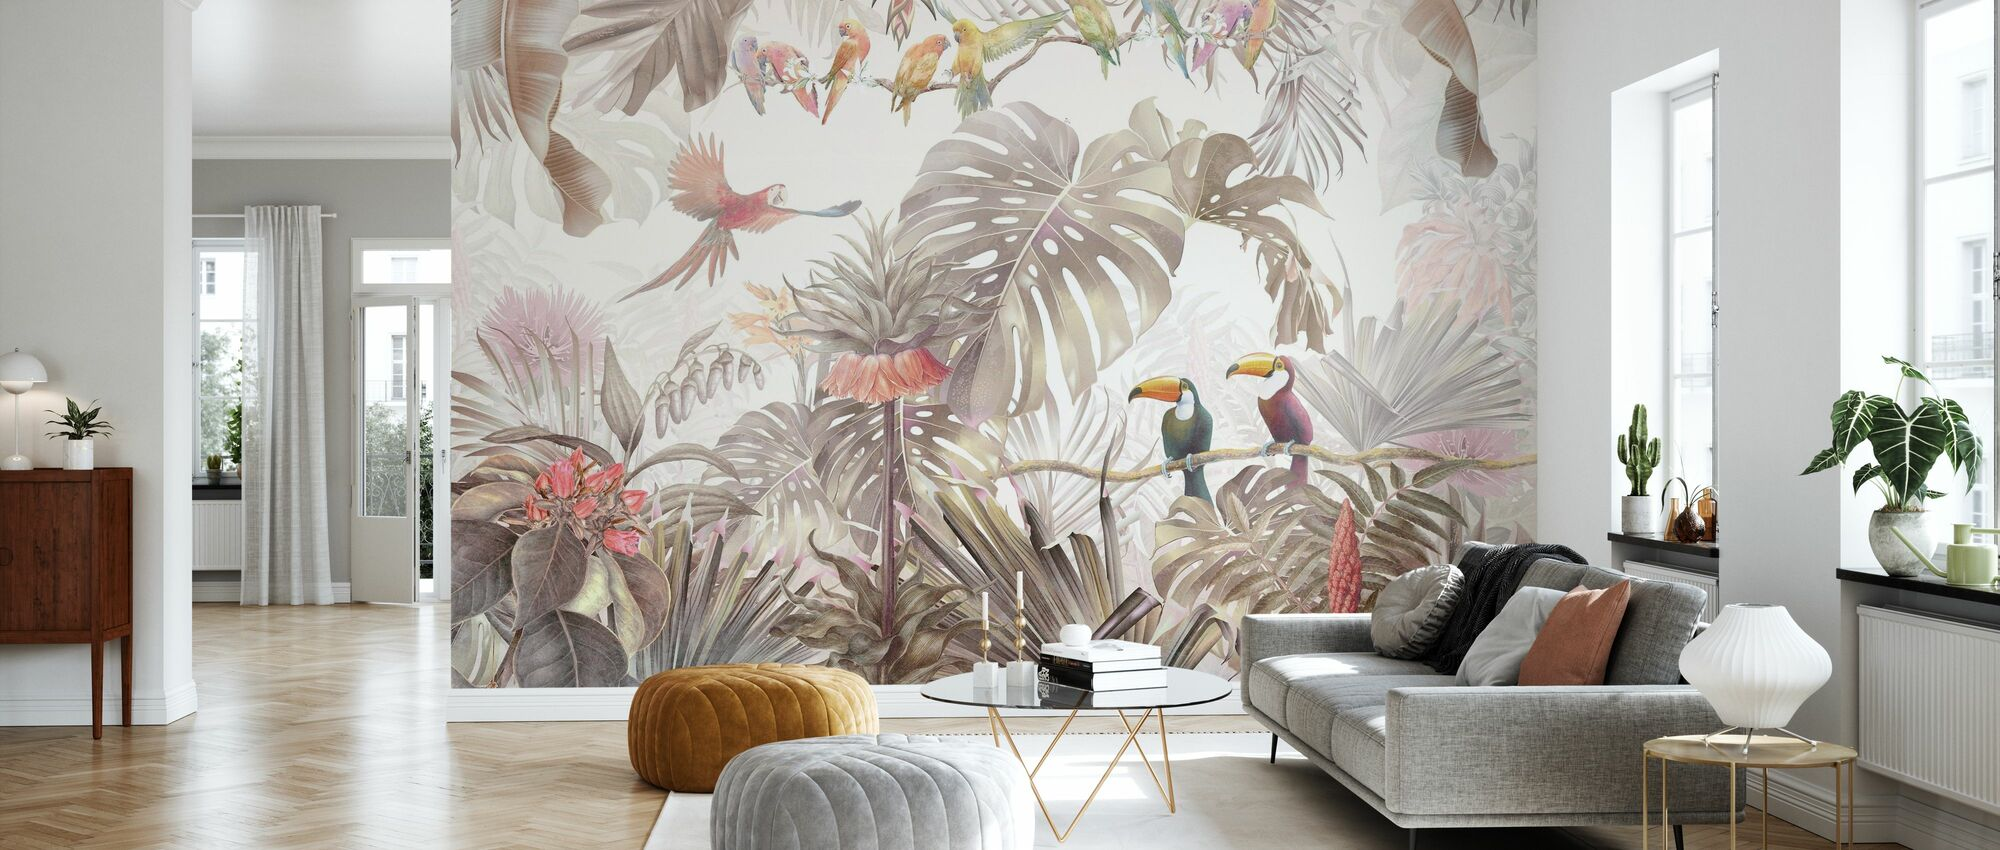 Tropical Birds - Wallpaper - Living Room